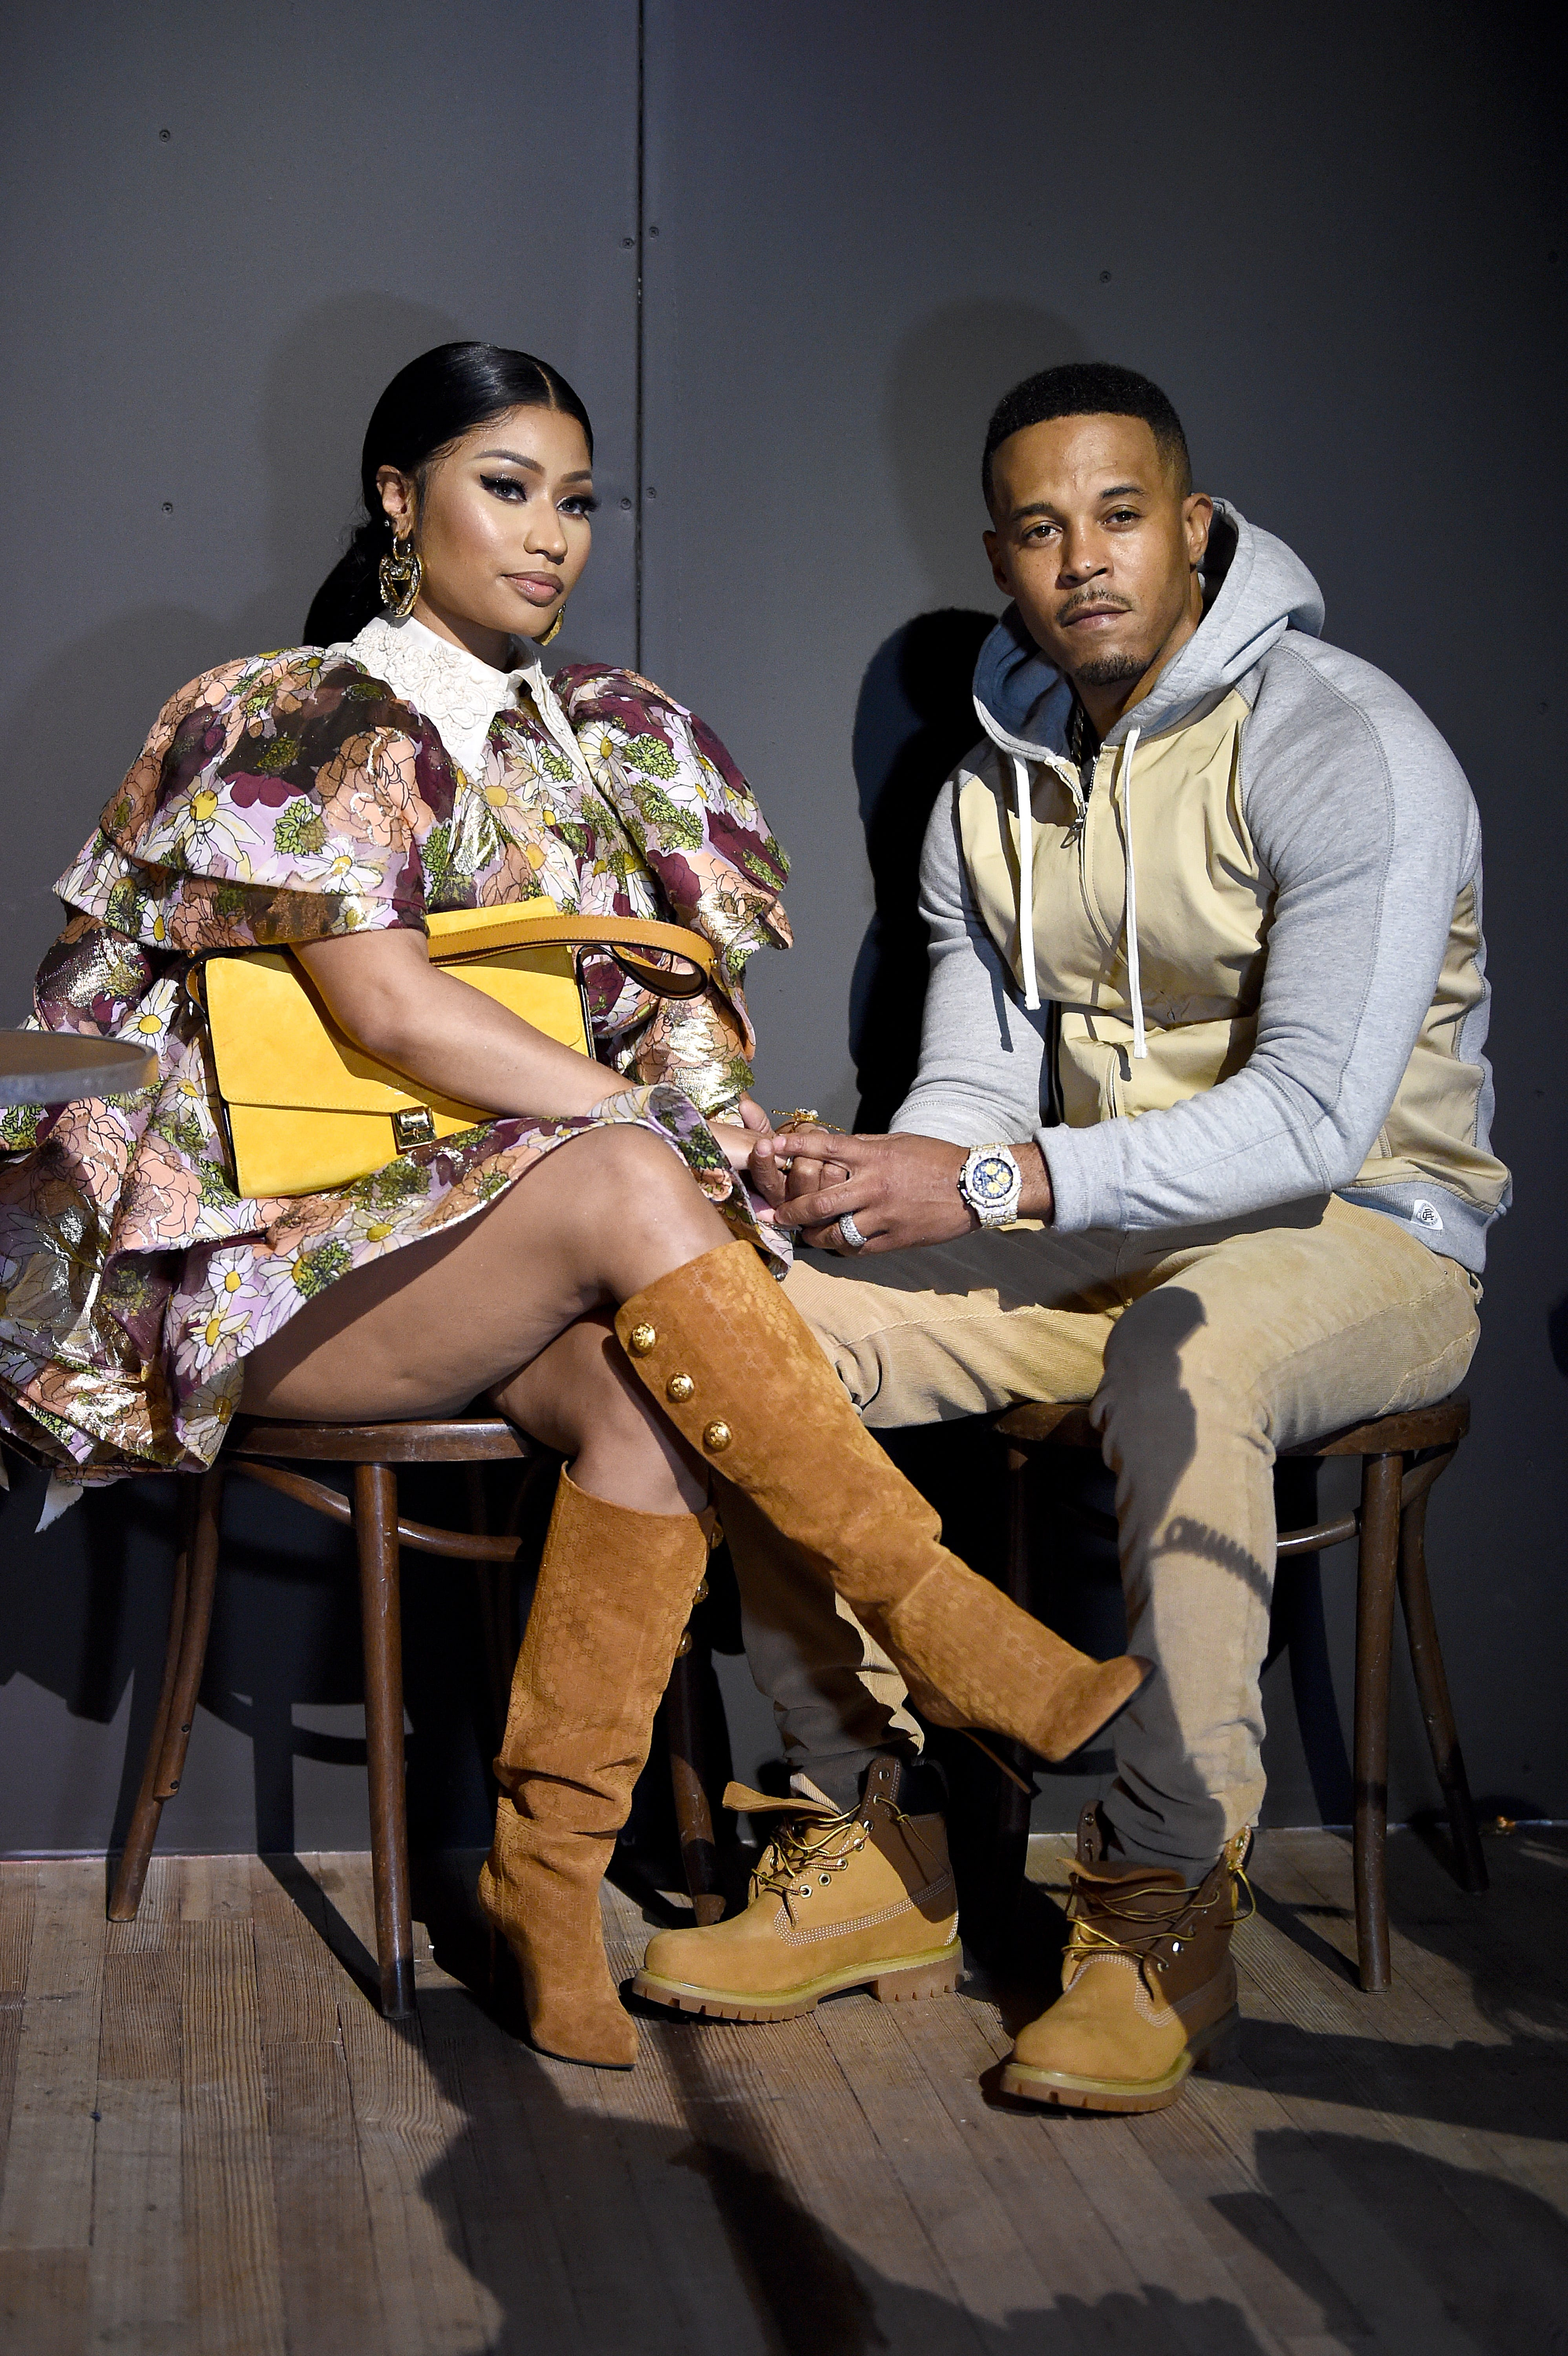 Kenneth Petty, Nicki Minaj s accuser speaks publicly on  The Real :  I m tired of being afraid